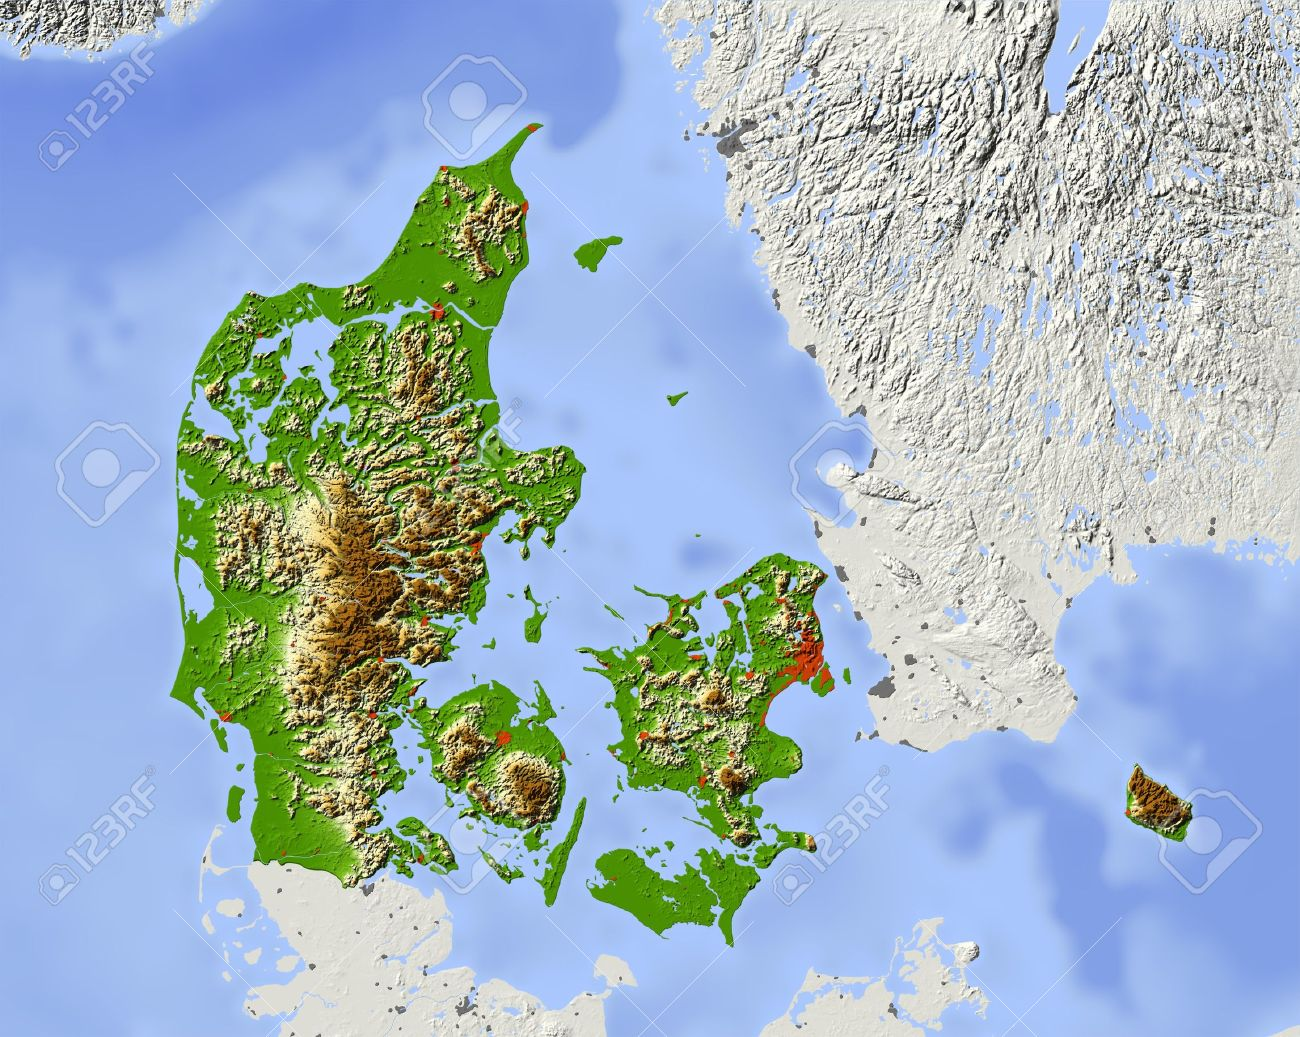 Denmark Shaded Relief Map Surrounding Territory Greyed Out - Norway elevation map